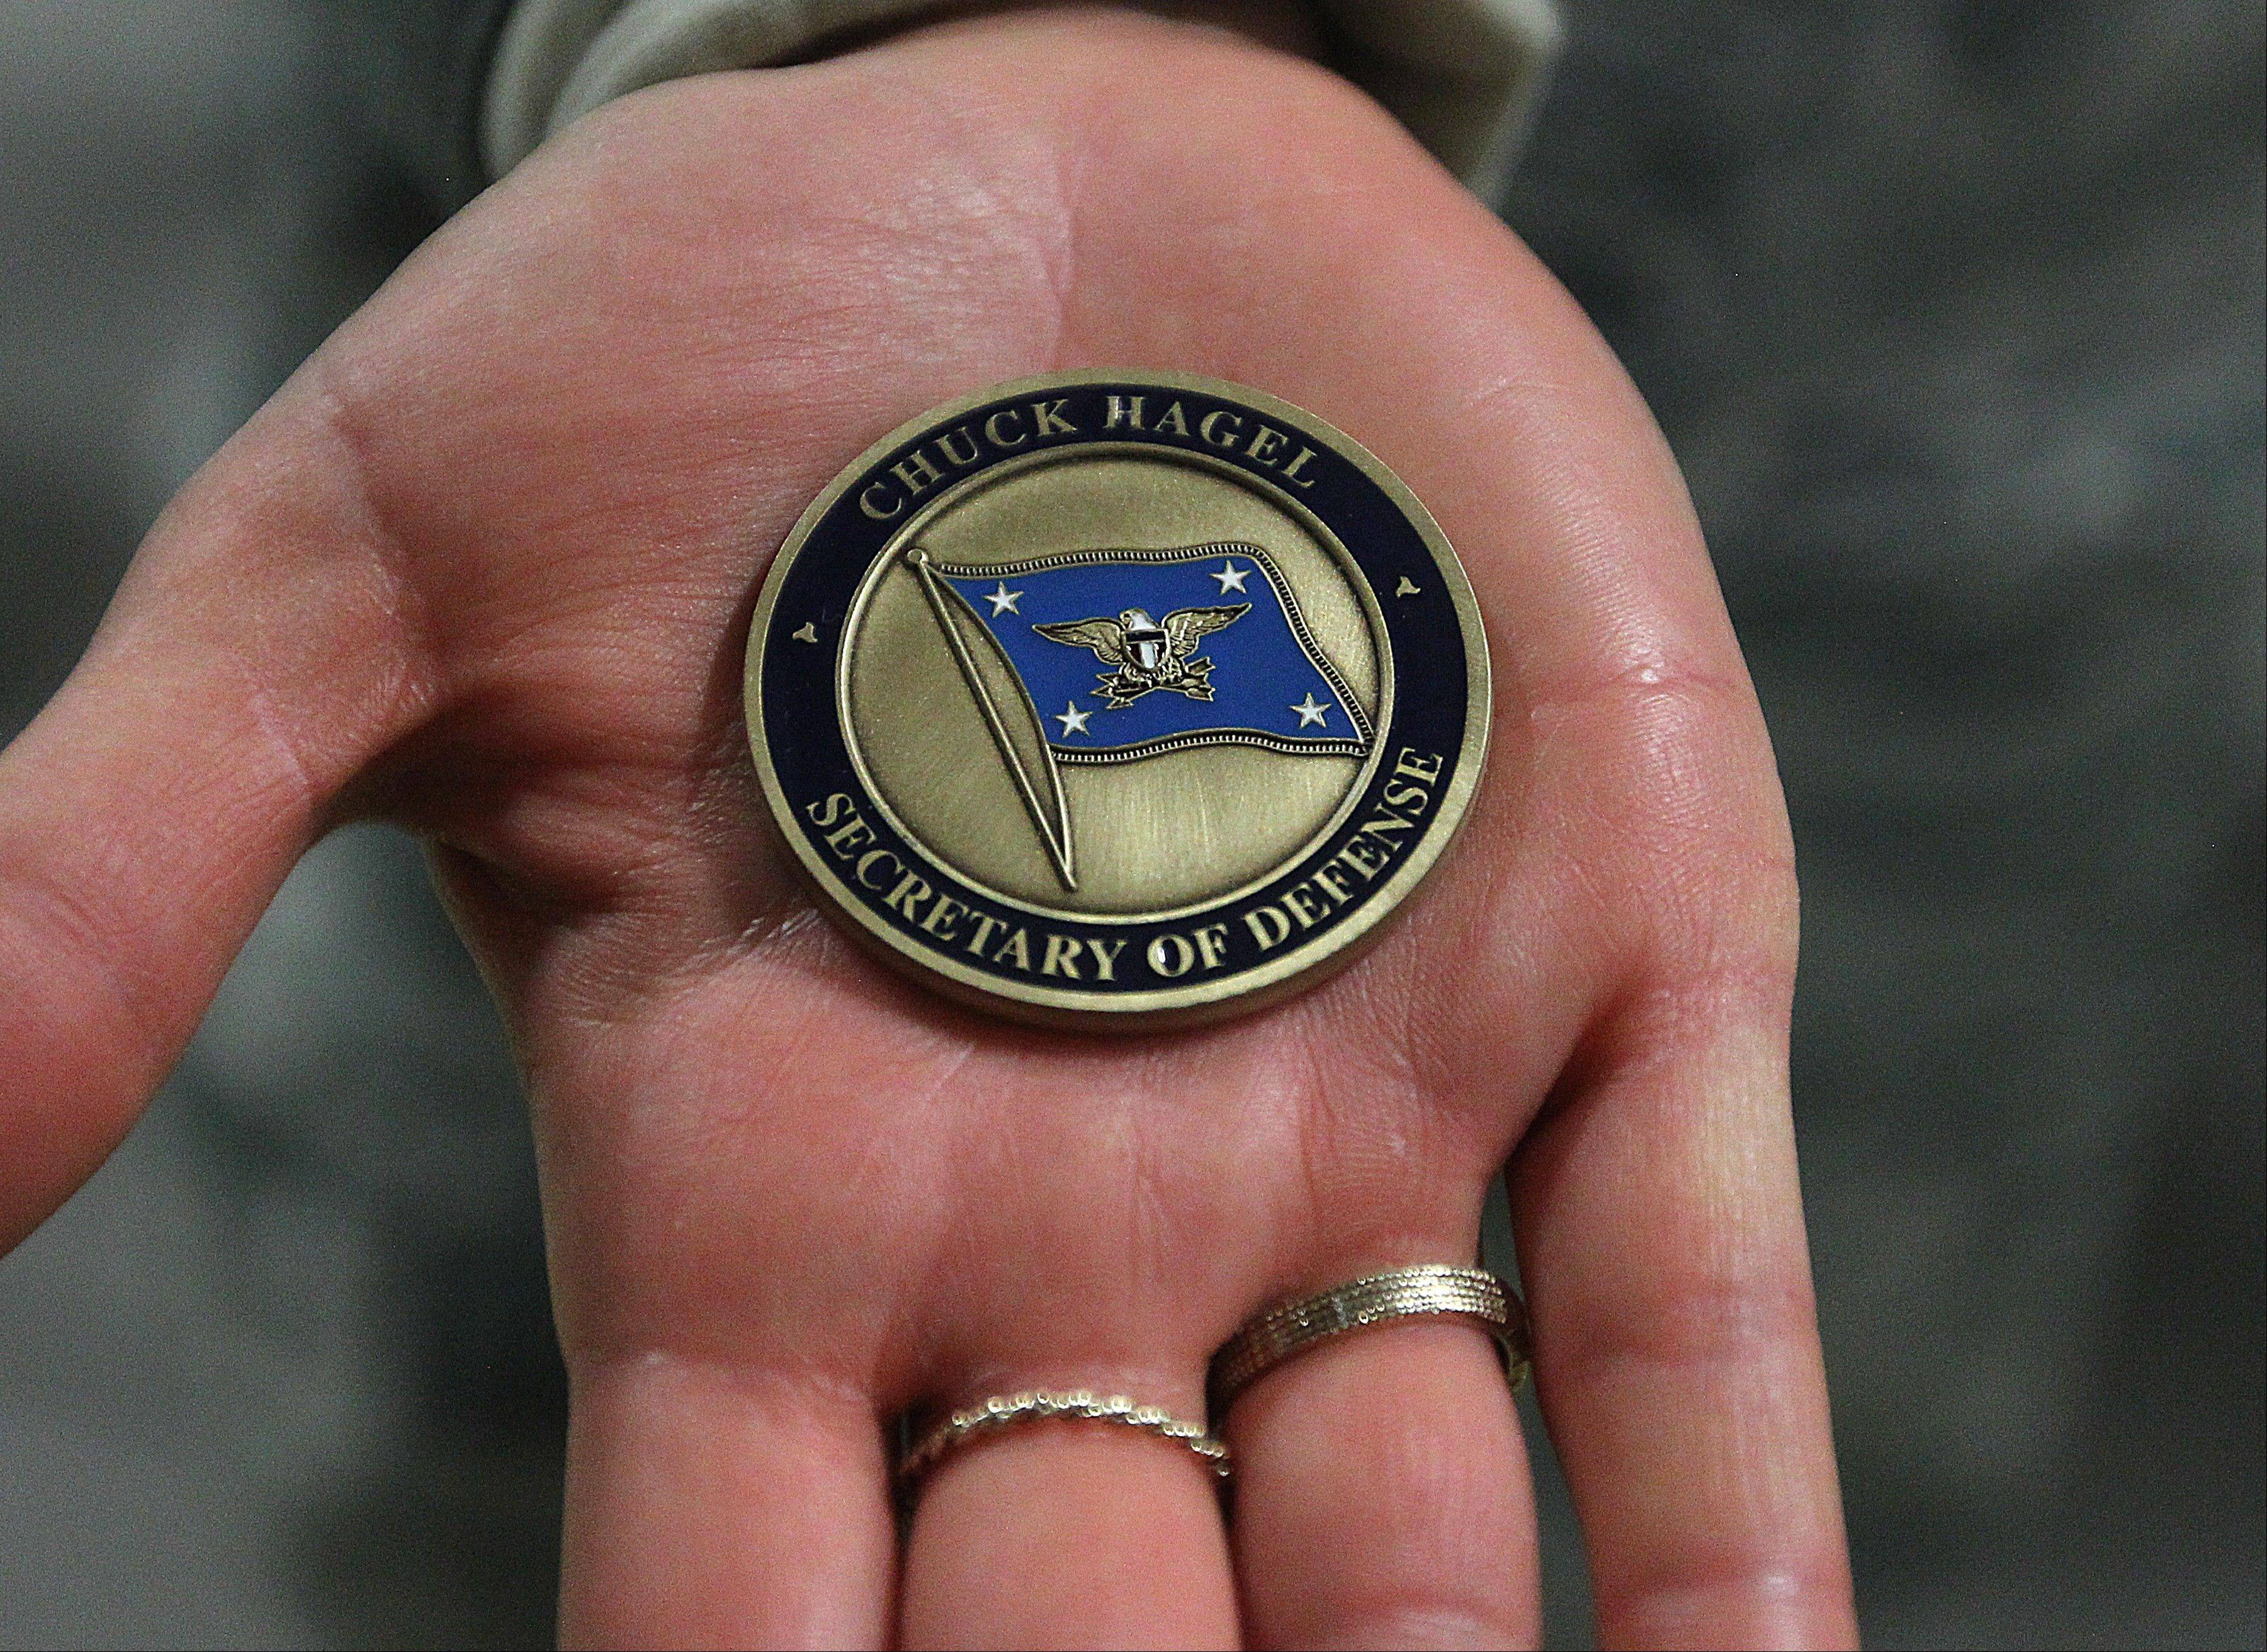 Military coins were handed out to airmen attending the visit of Defense Secretary Chuck Hagel on Thursday, Jan. 9, 2014 at F.E. Warren Air Force Base in Cheyenne, Wyo.